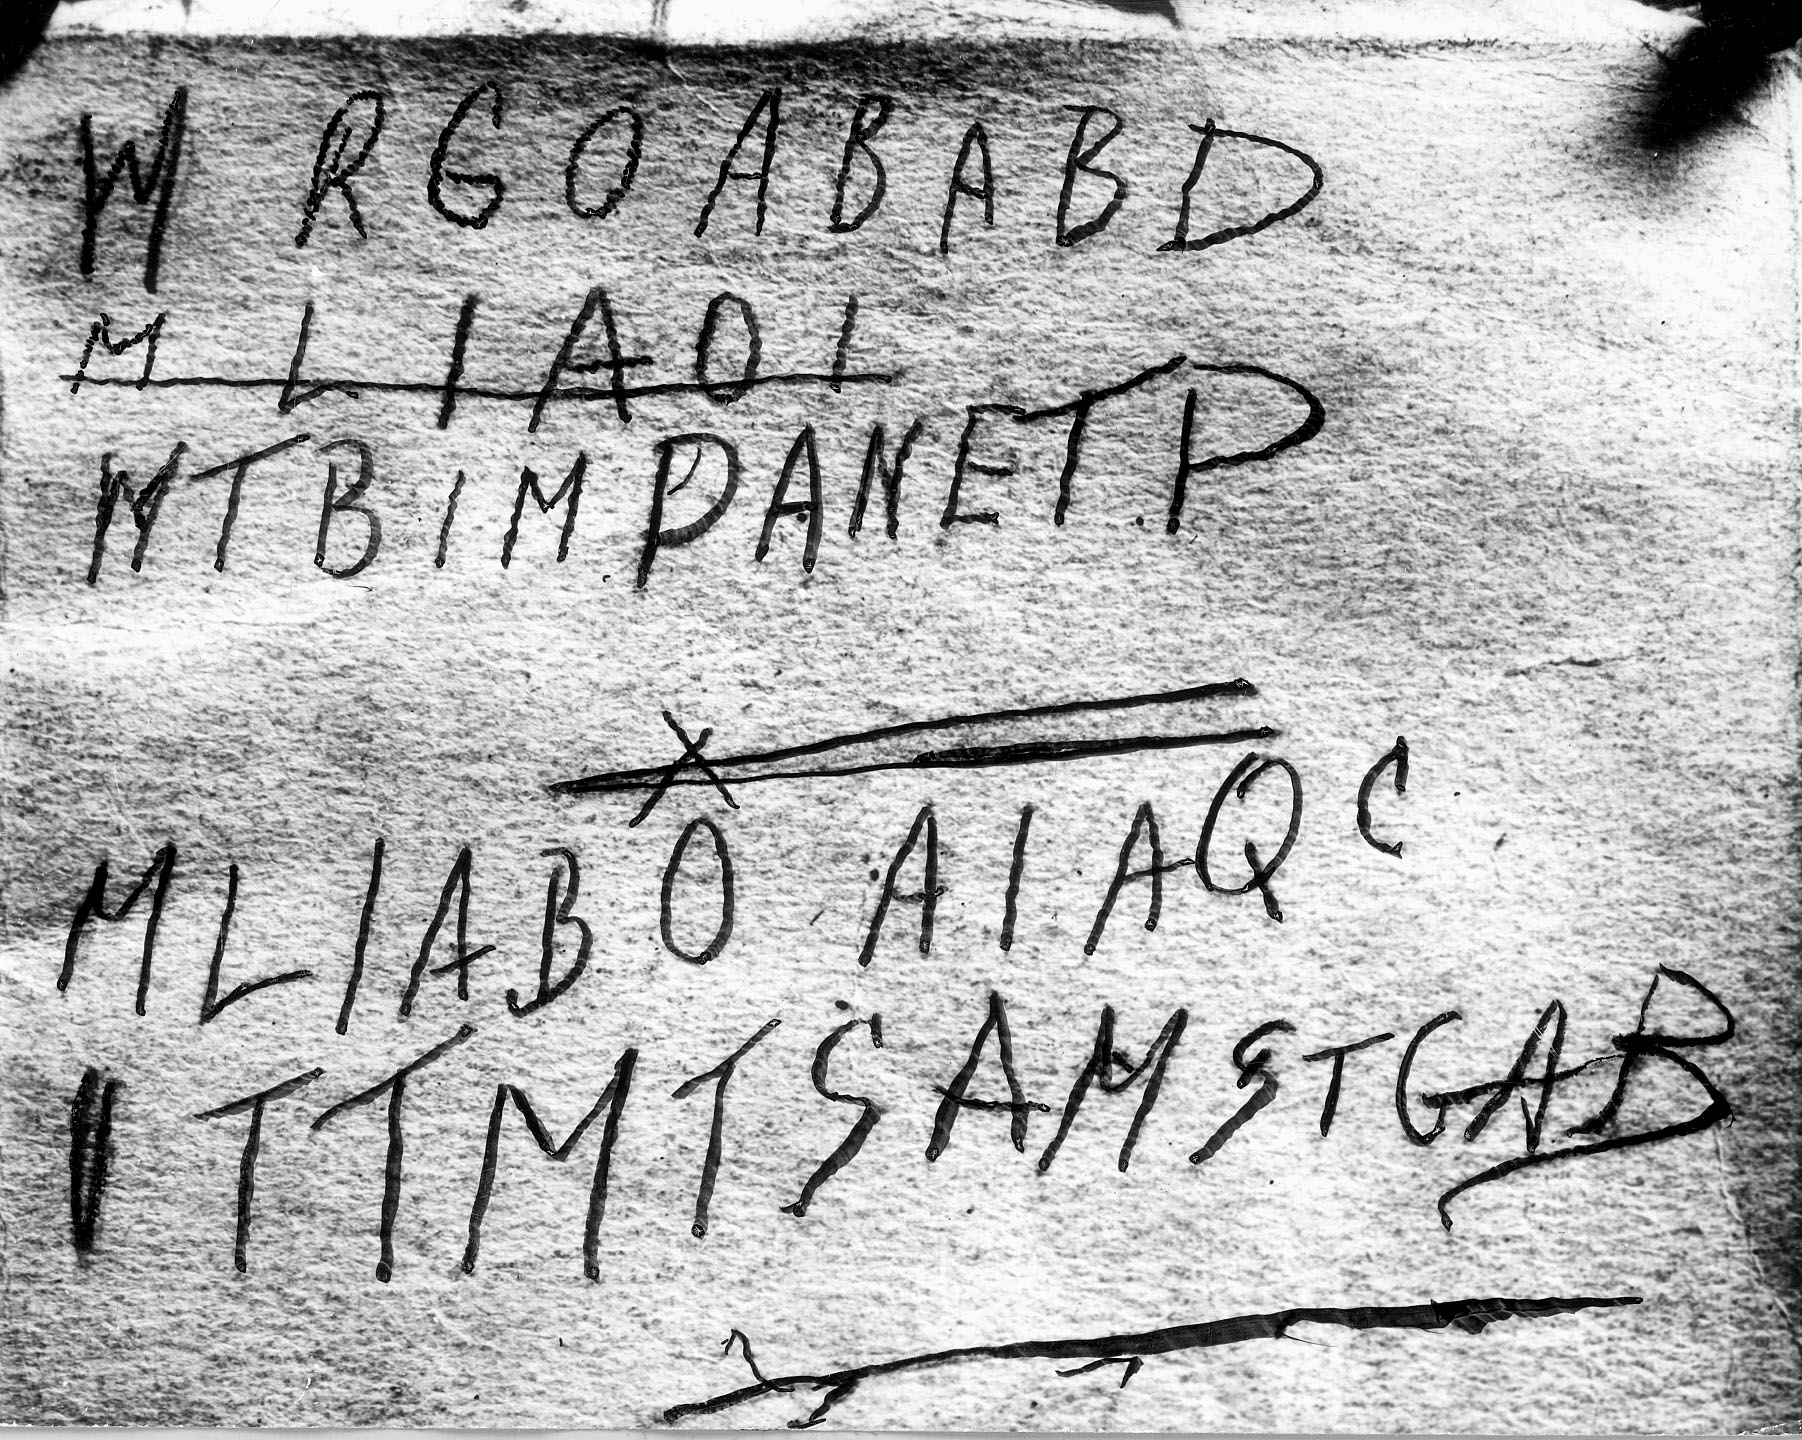 Tamam Shud / Somerton Man - Cipher Mysteries